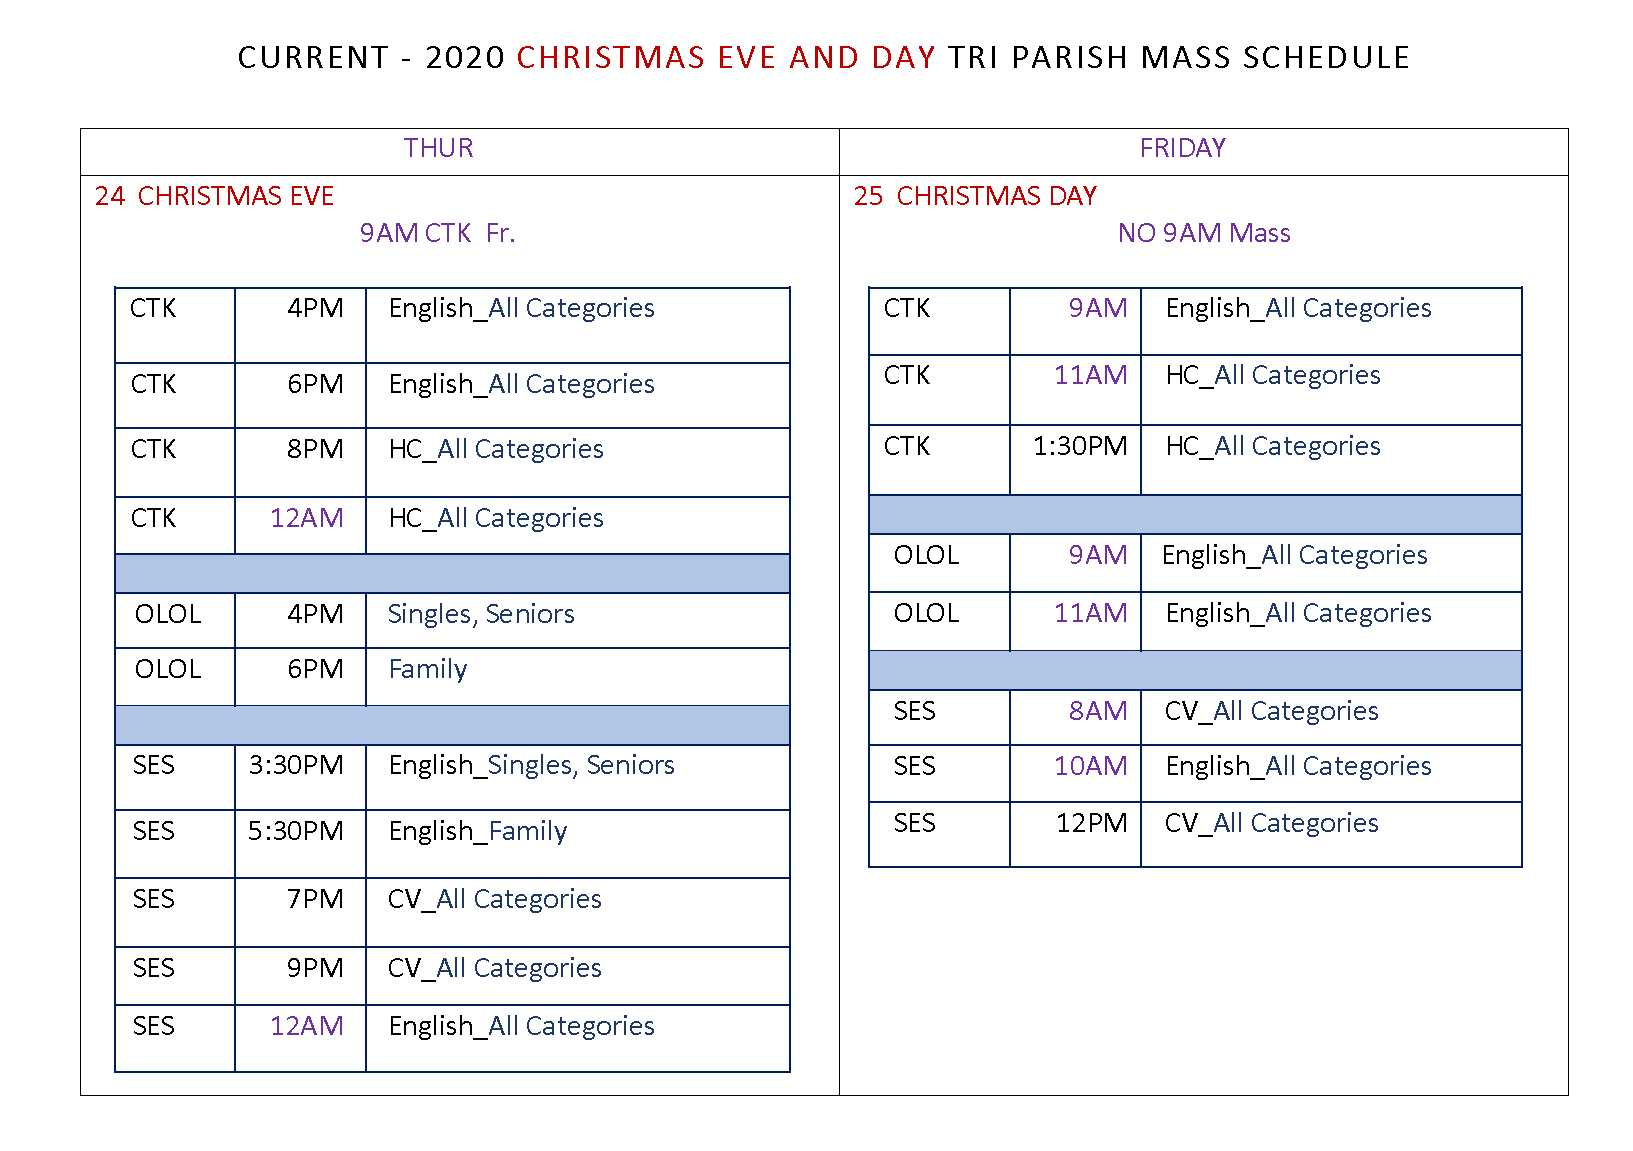 The Message Christmas Mass Schedules 2020 Catholic Tri Parishes of Brockton: Welcome to the Brockton